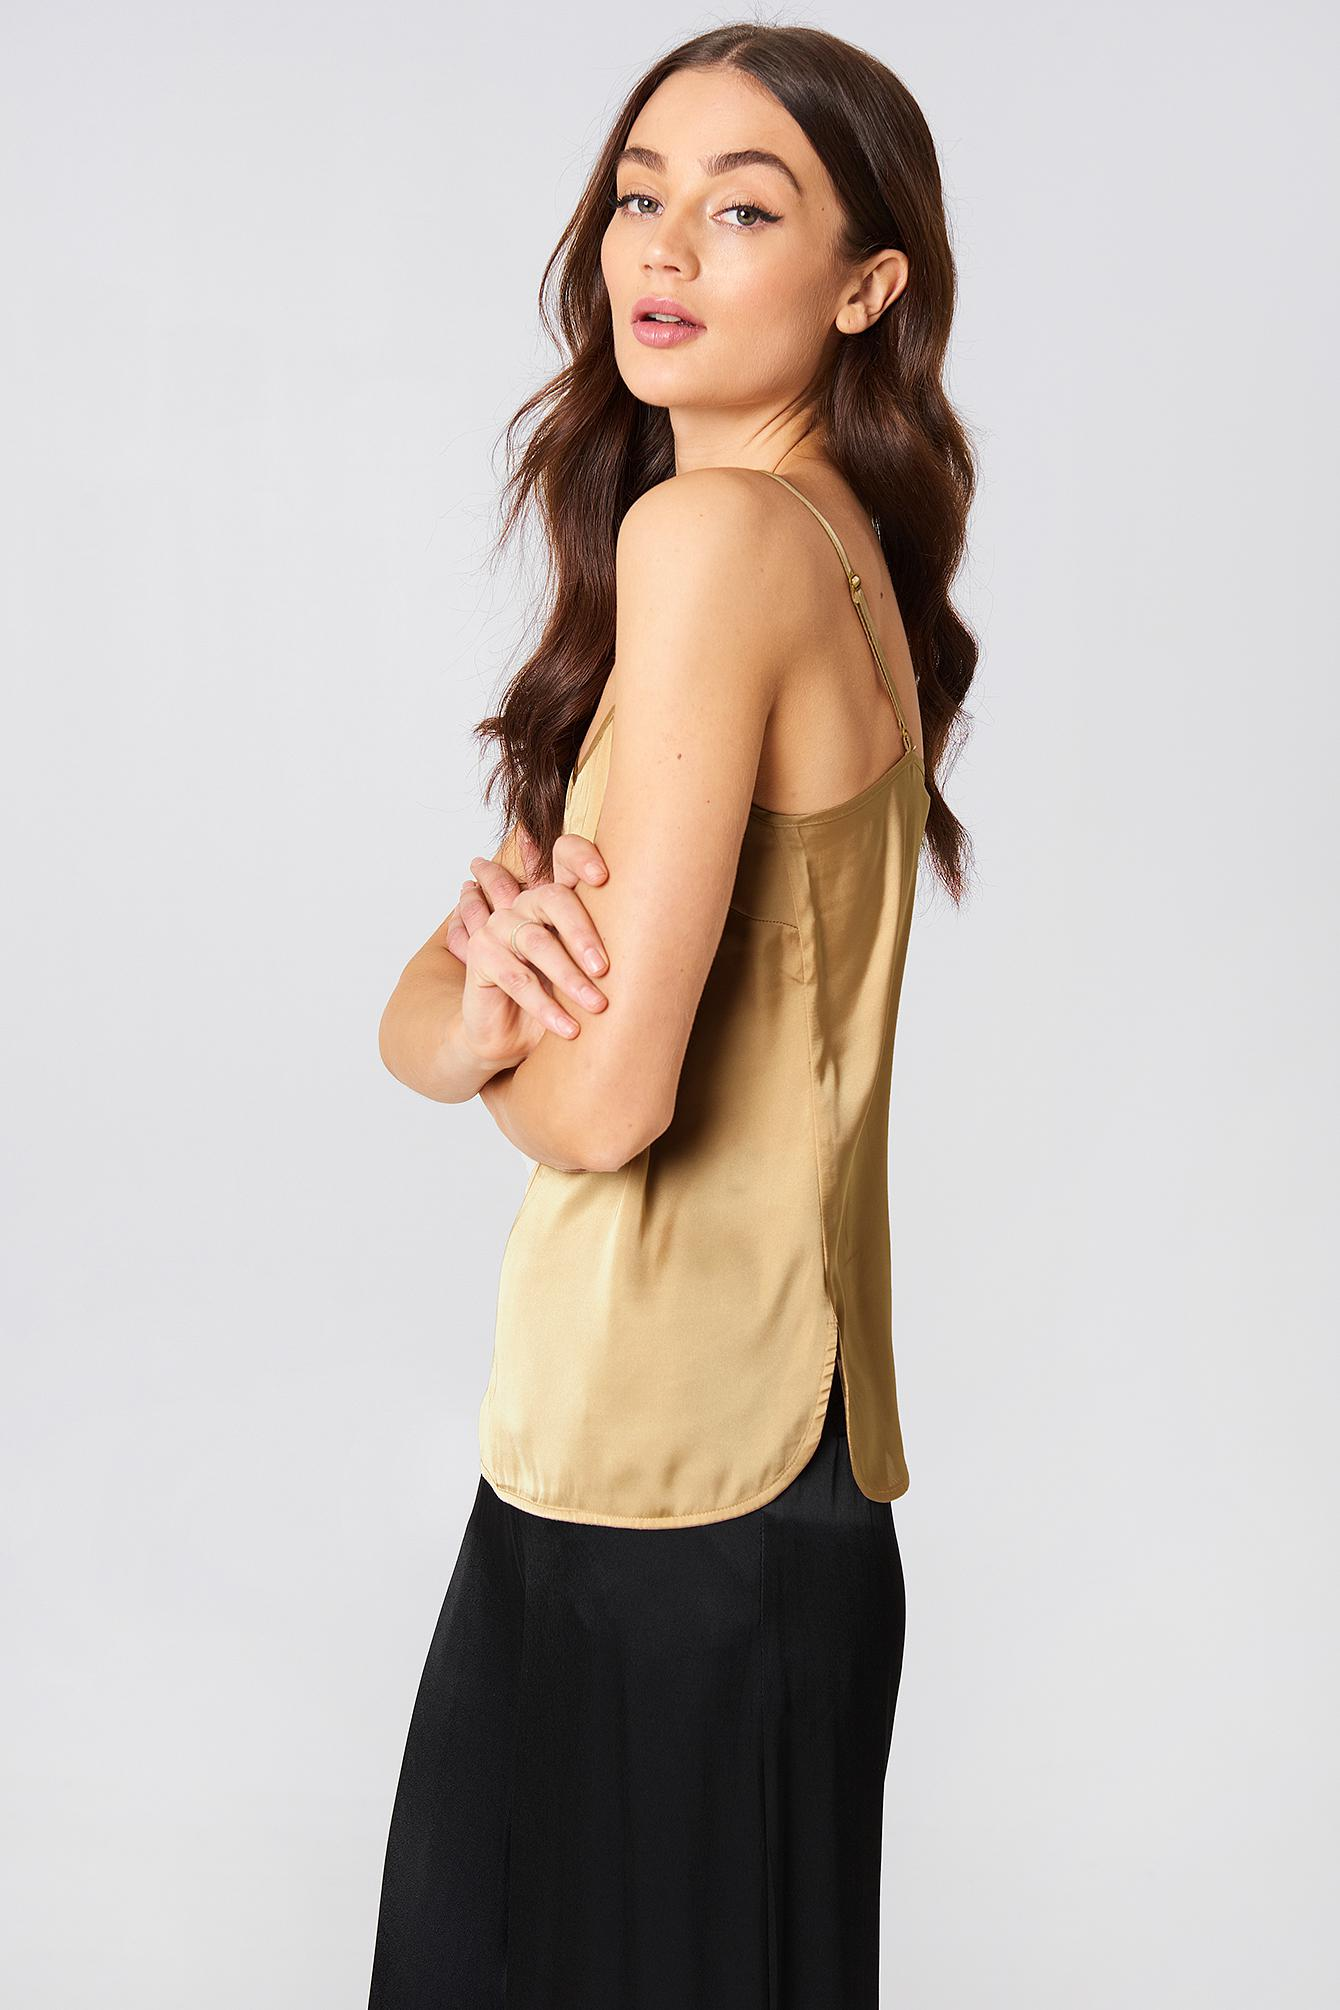 53896959d43a40 Lyst - NA-KD Chiffon Detailed Singlet Gold in Metallic - Save ...